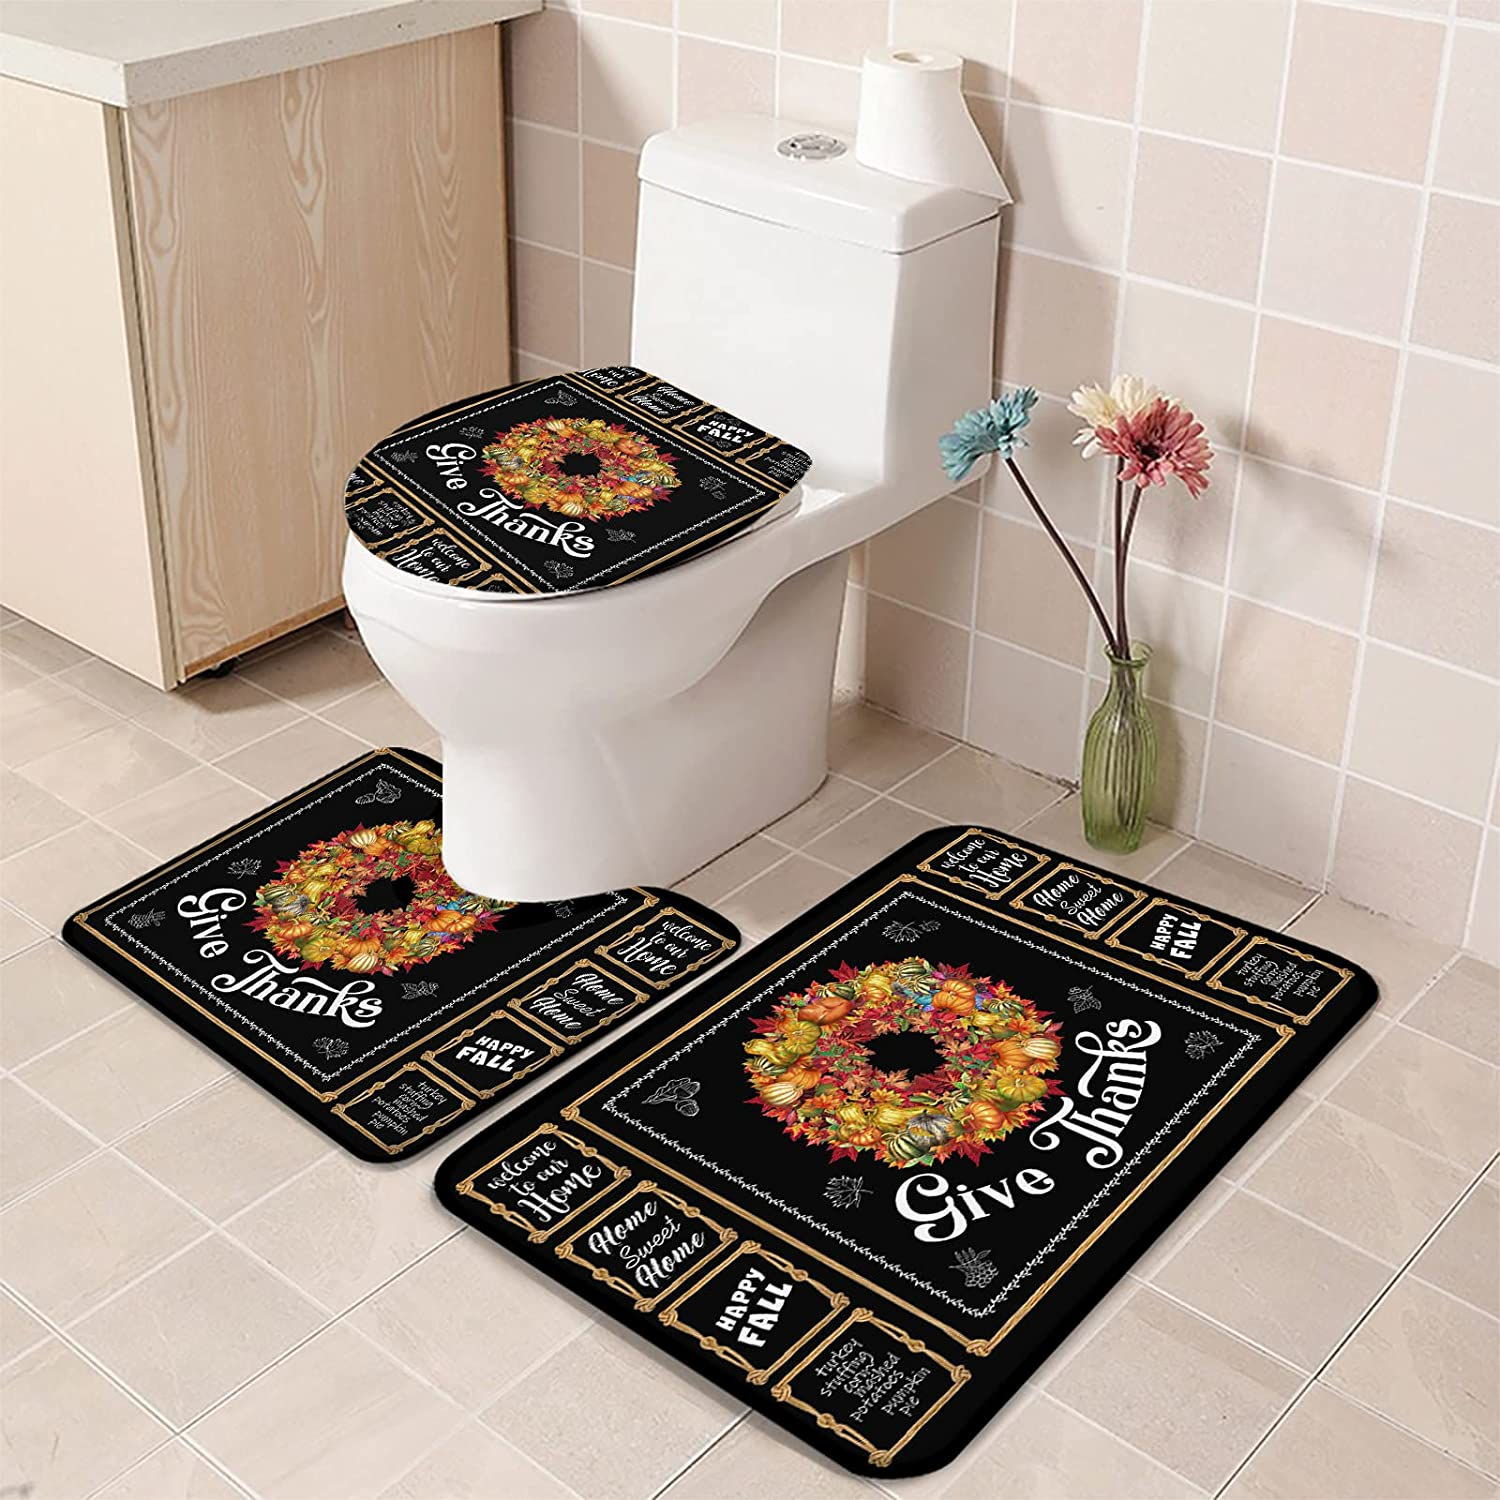 3 Piece Bathroom Rugs and Mats Thanks Aut Ranking 1 year warranty TOP18 Set Gives Thanksgiving